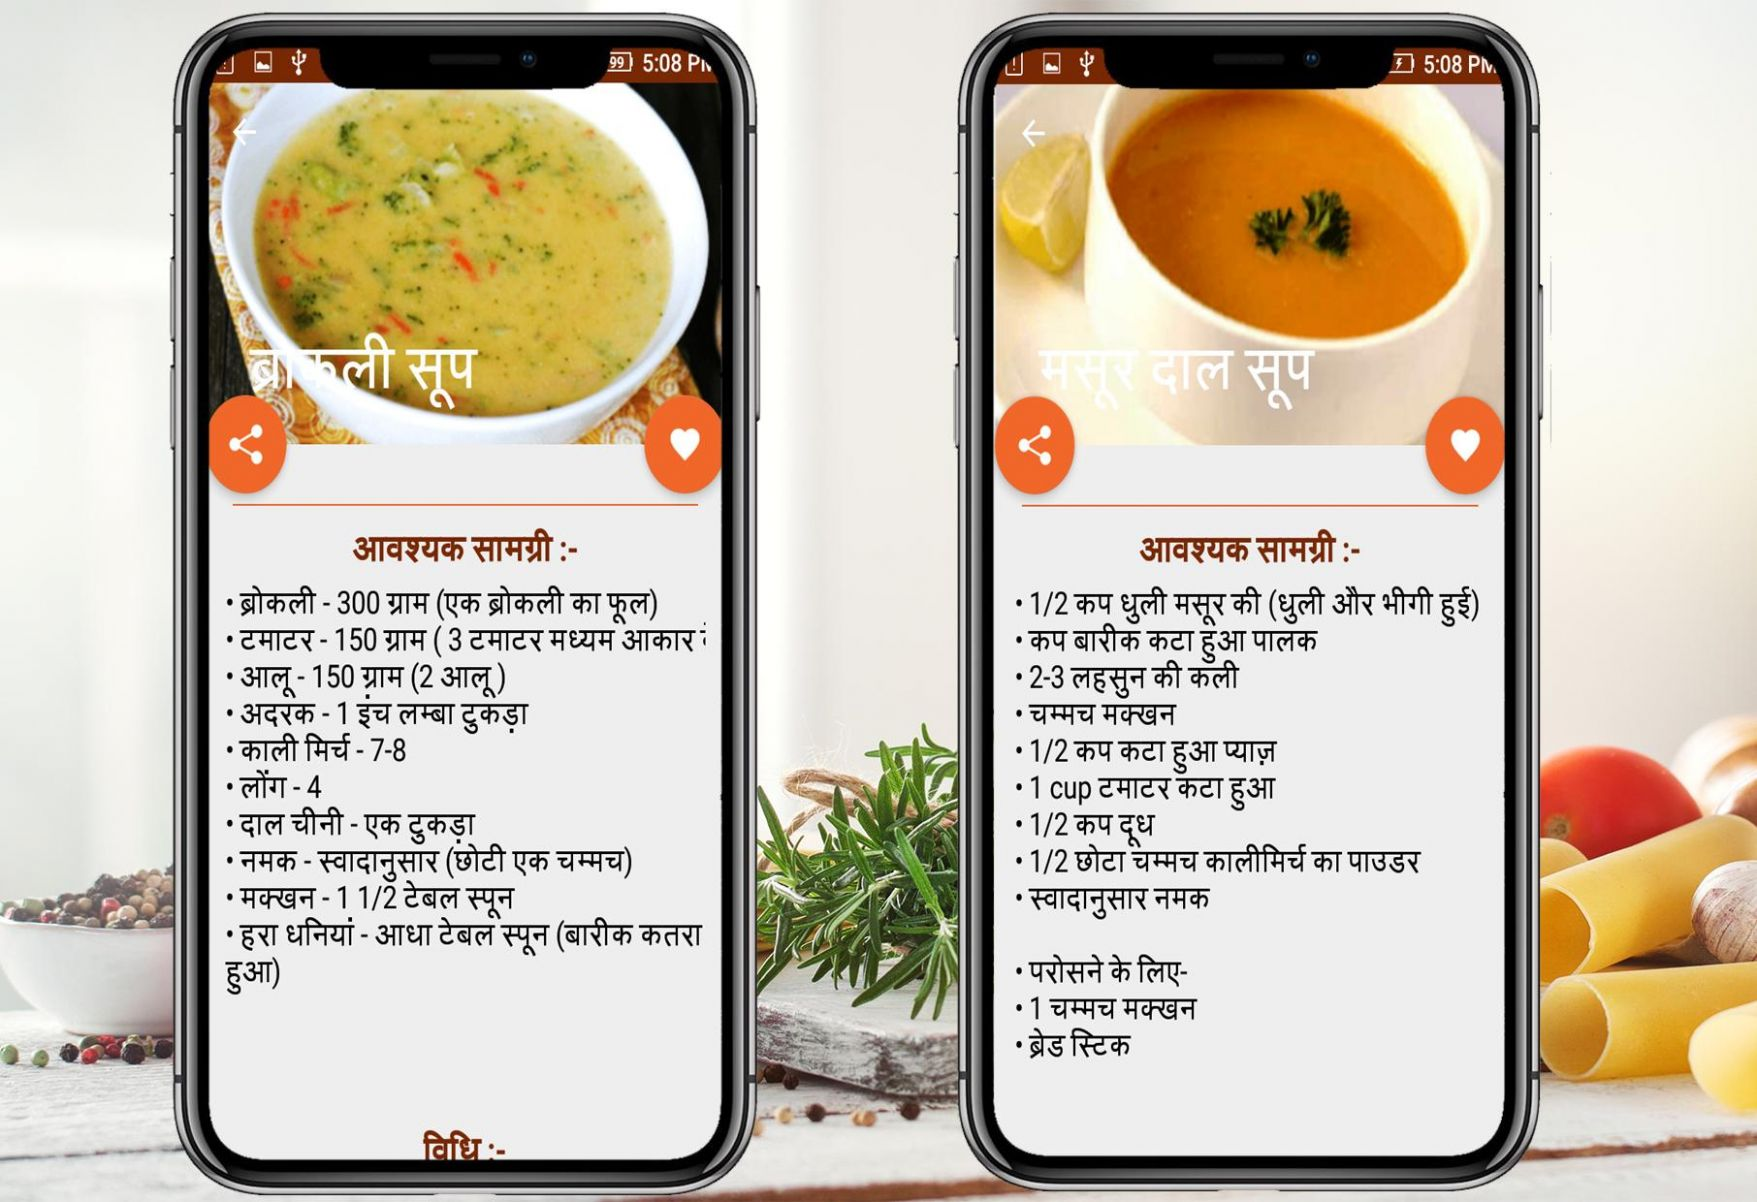 Soup Recipes in Hindi ( Offline ) für Android - APK herunterladen - Soup Recipes Hindi